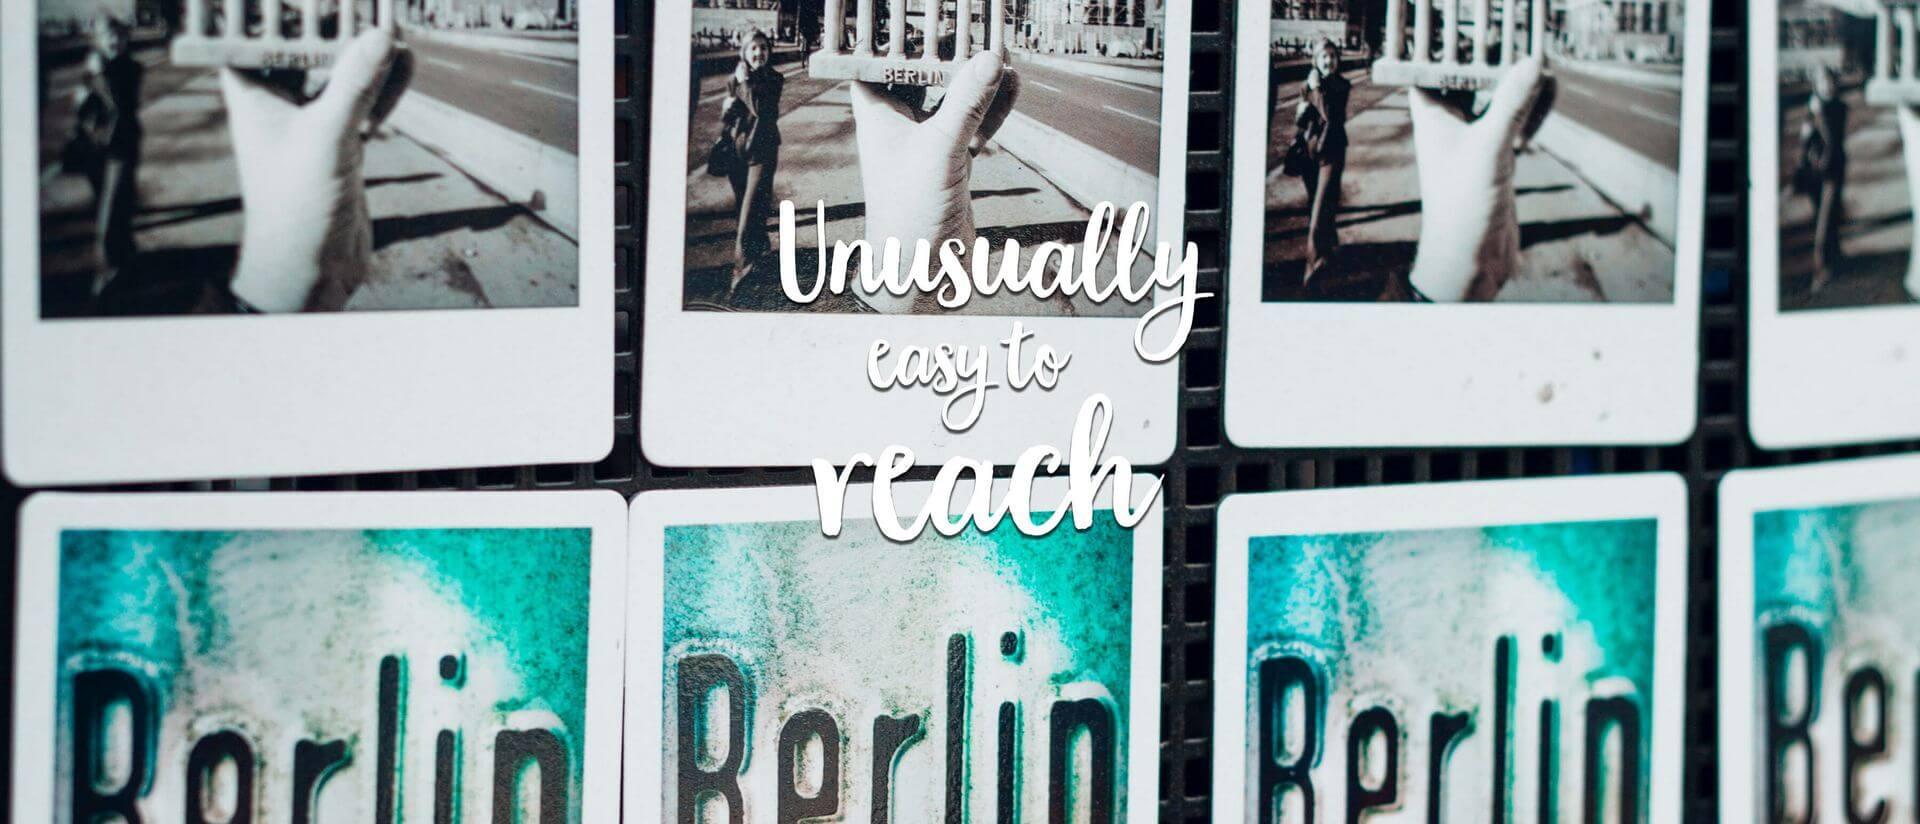 Polaroid pictures of Berlin